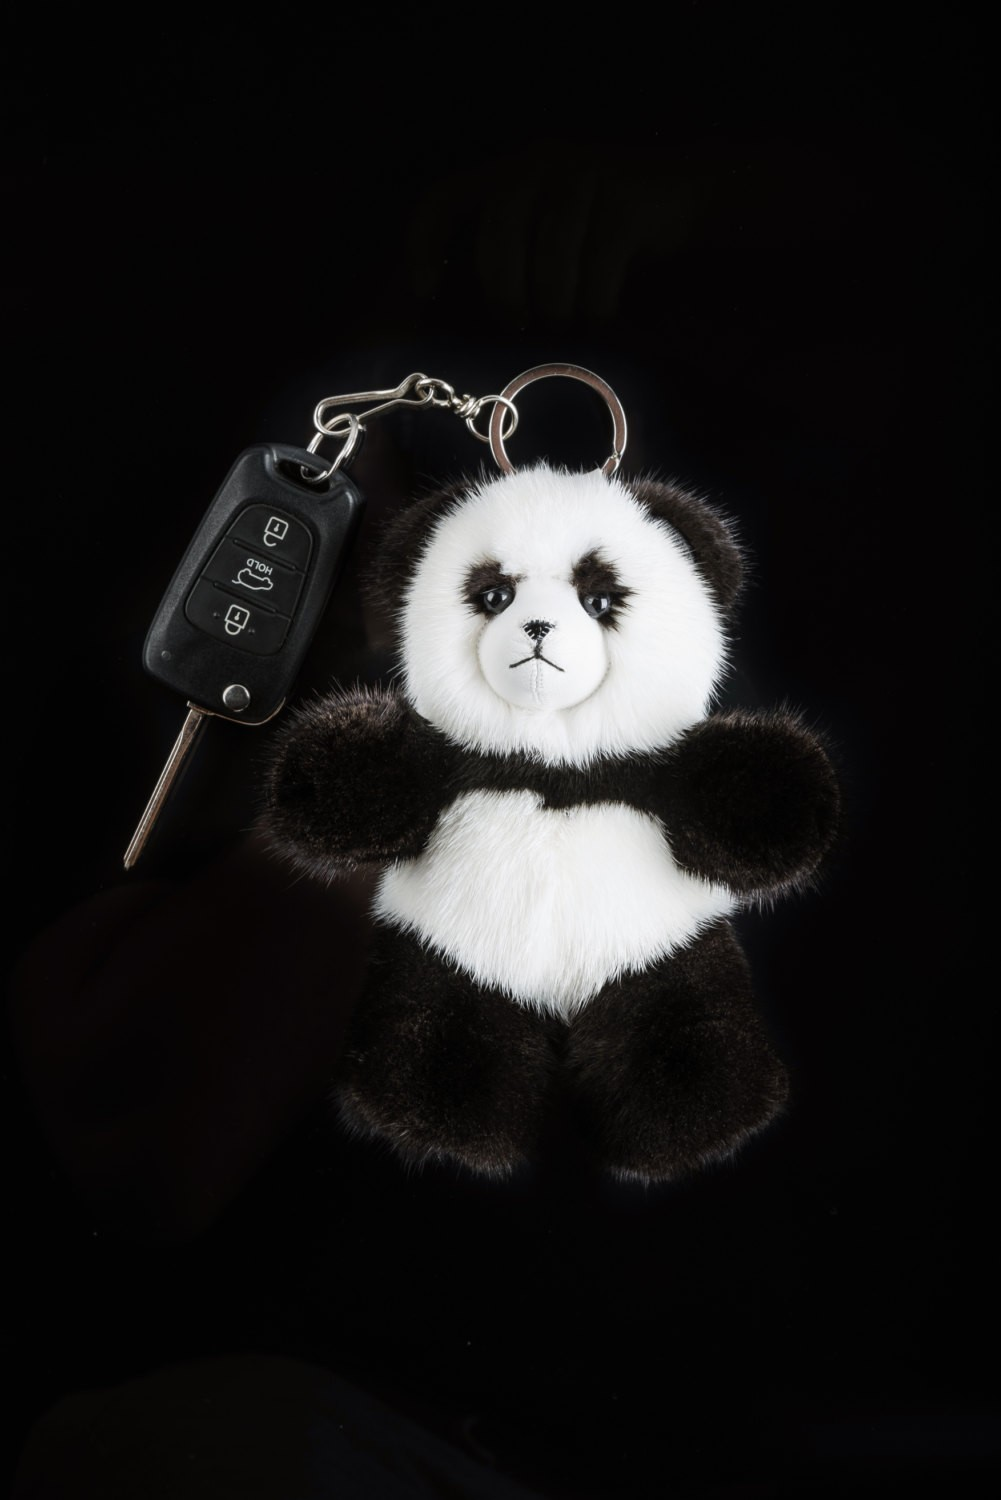 Buy Real Mink Fur Panda Keychain Black and White